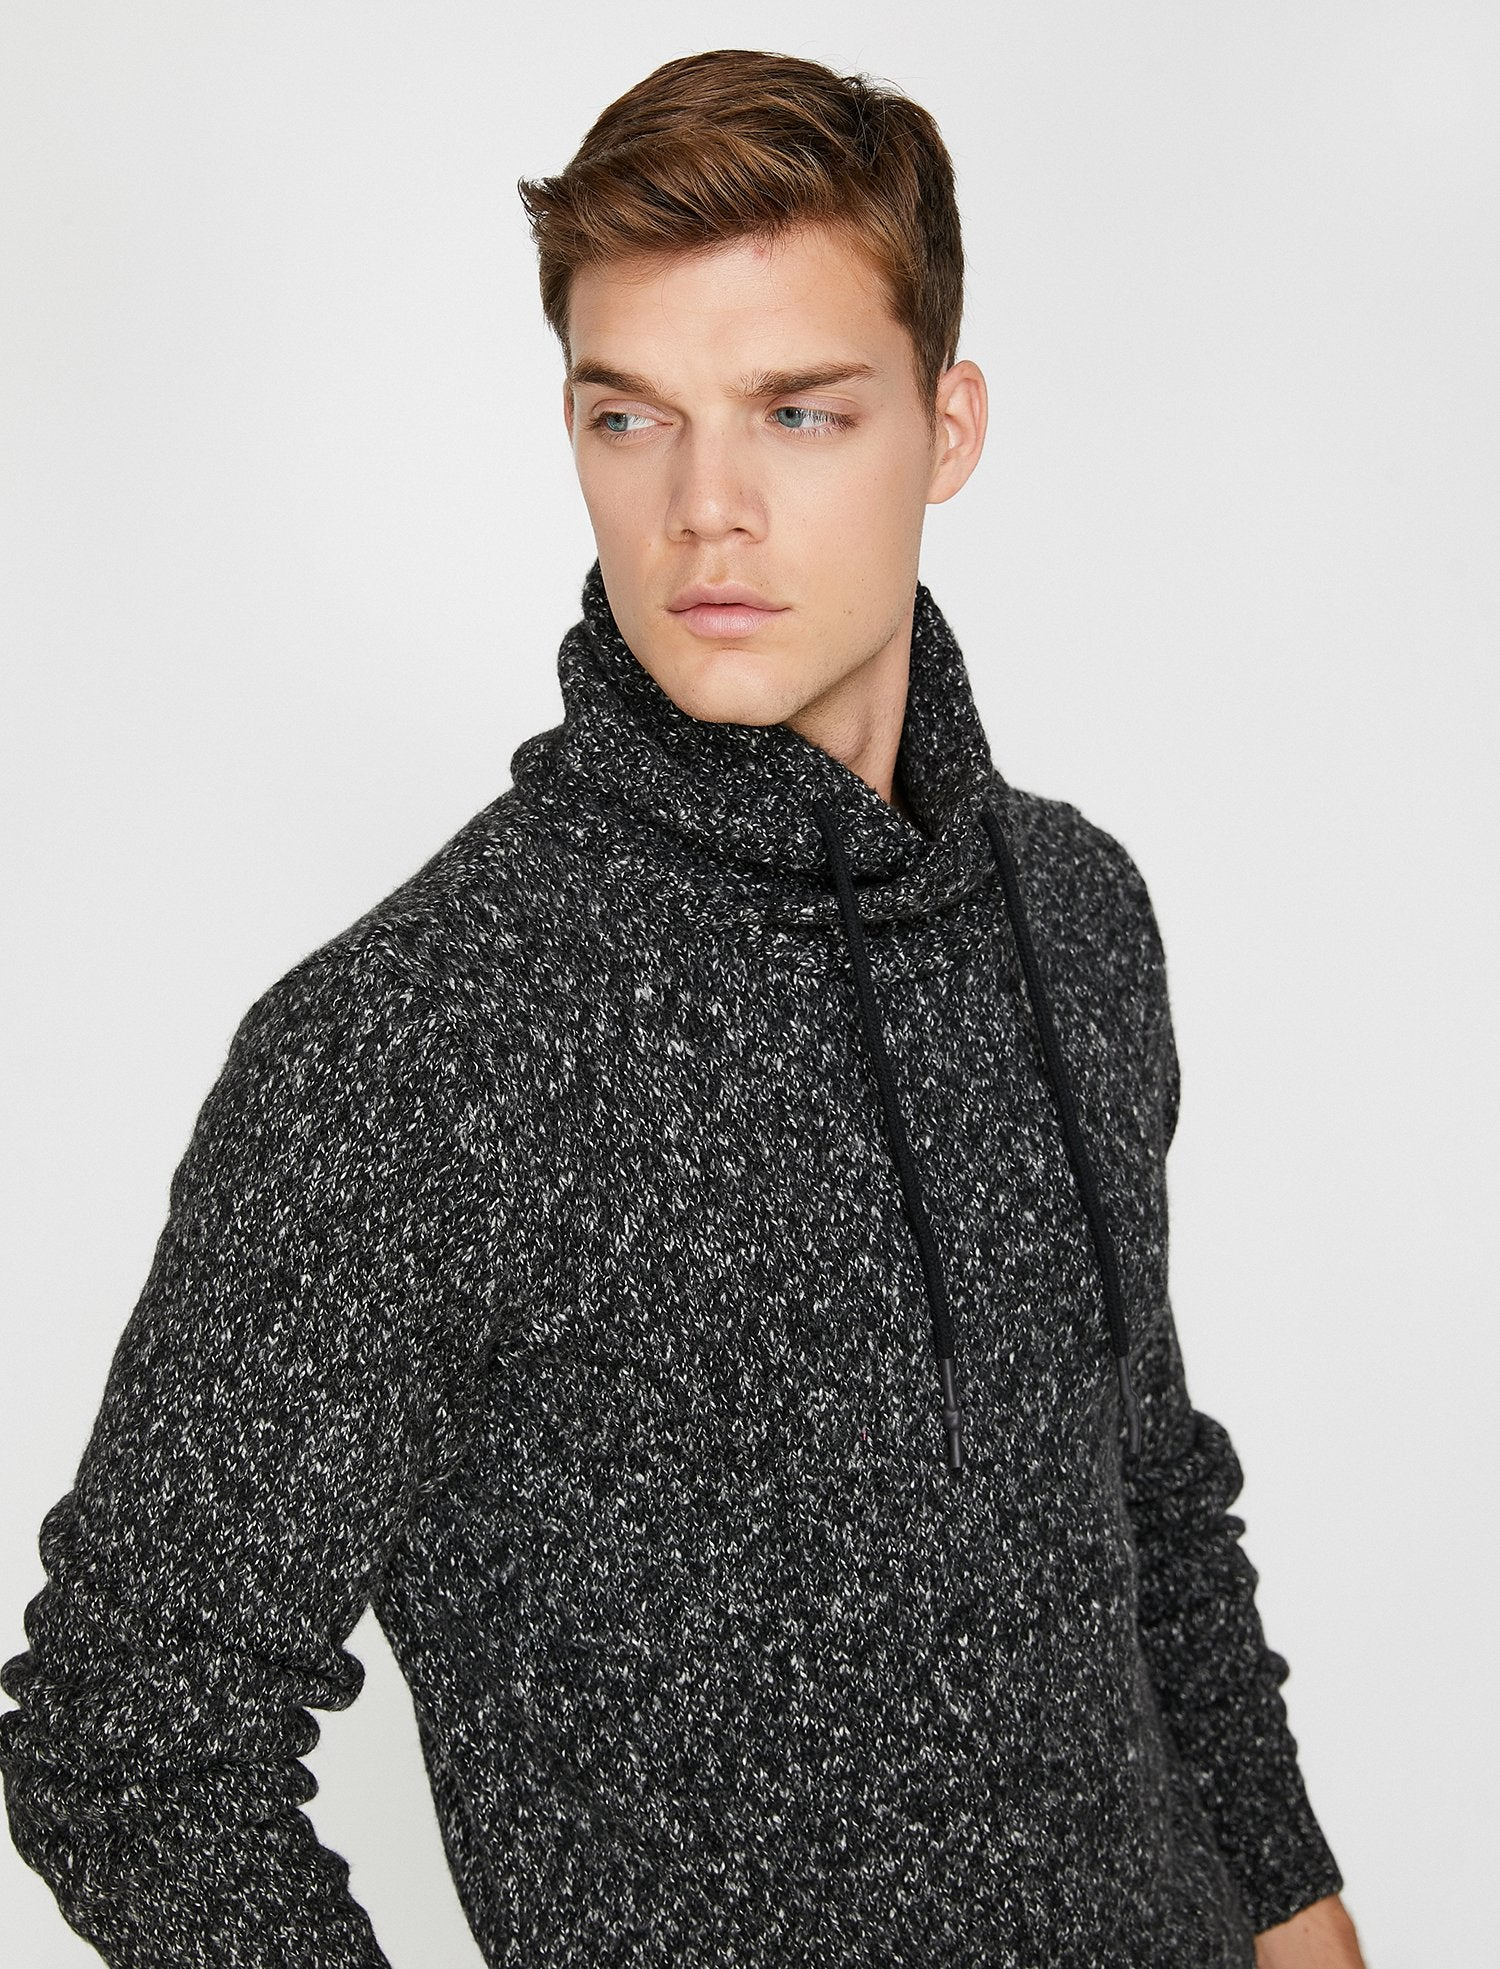 Marbled High Neck Sweater in Charcoal